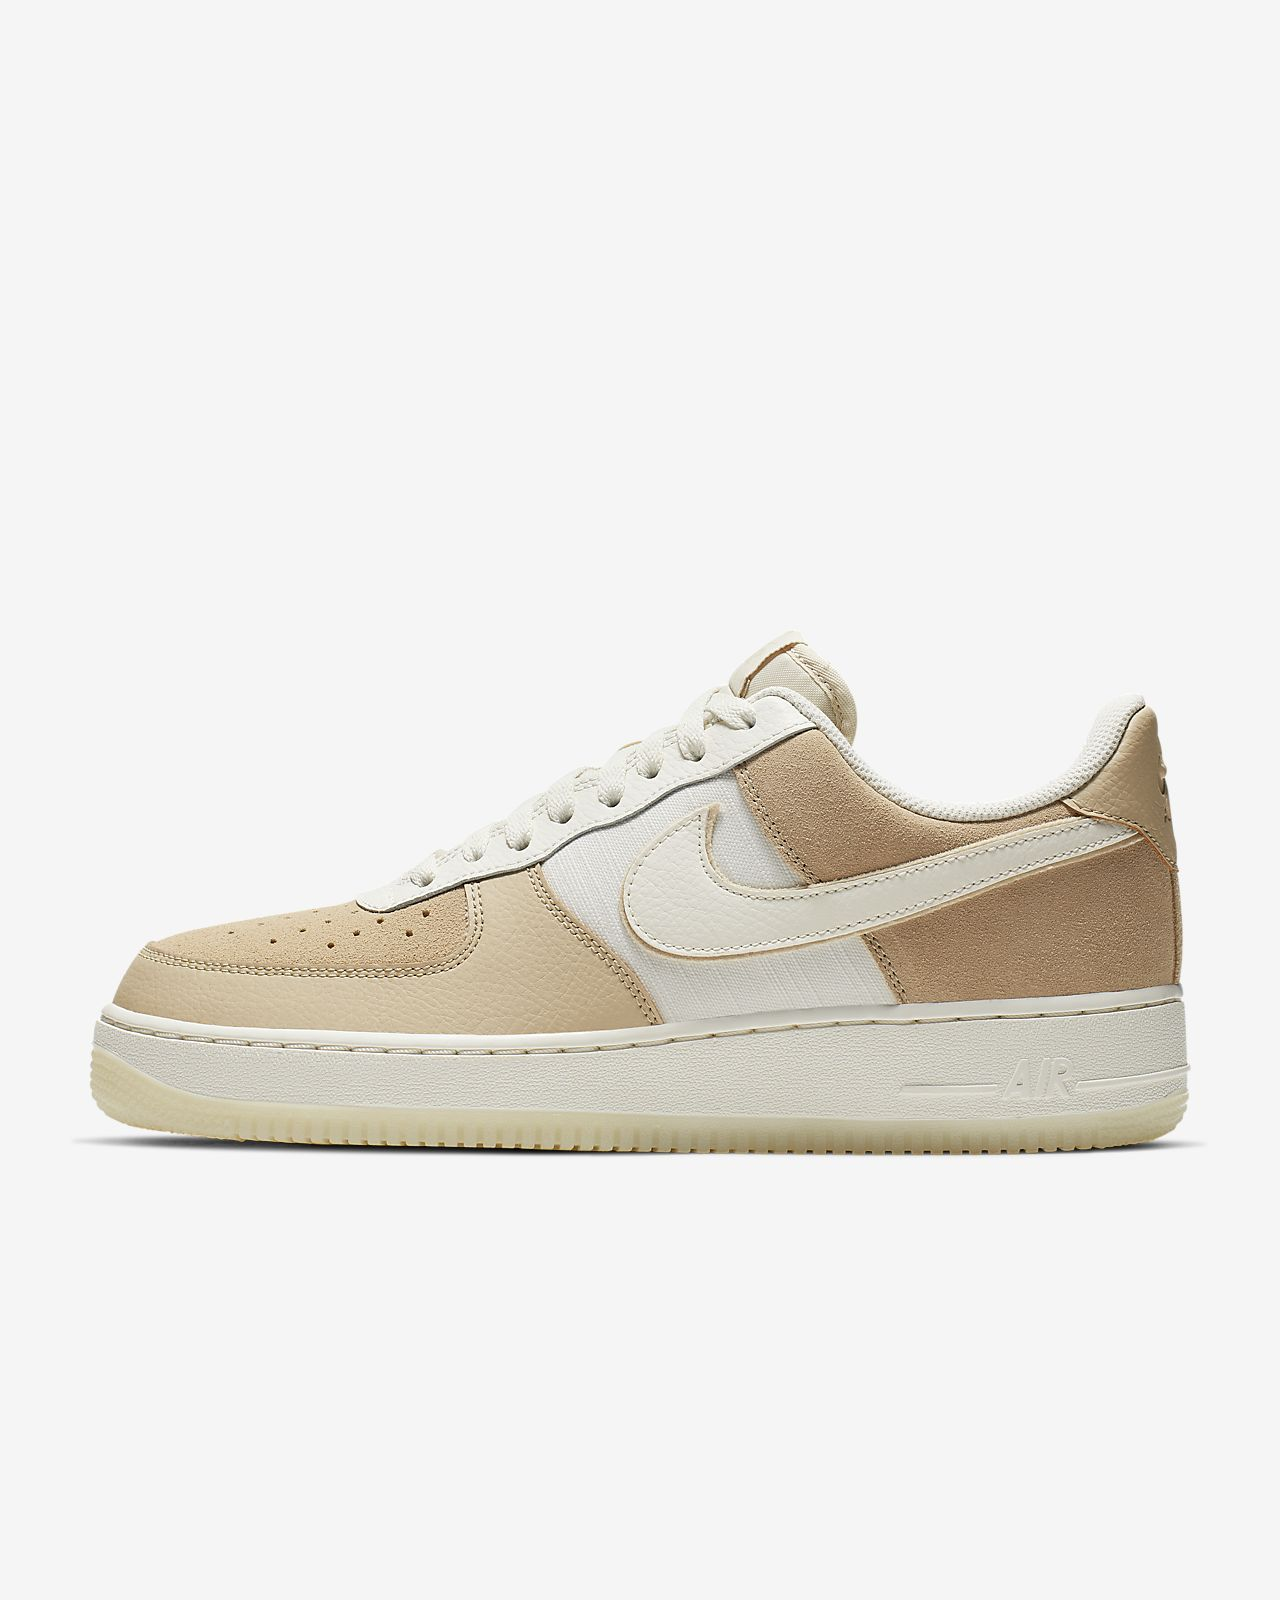 Nike Air Force 1 '07 LV8 2 Herenschoen